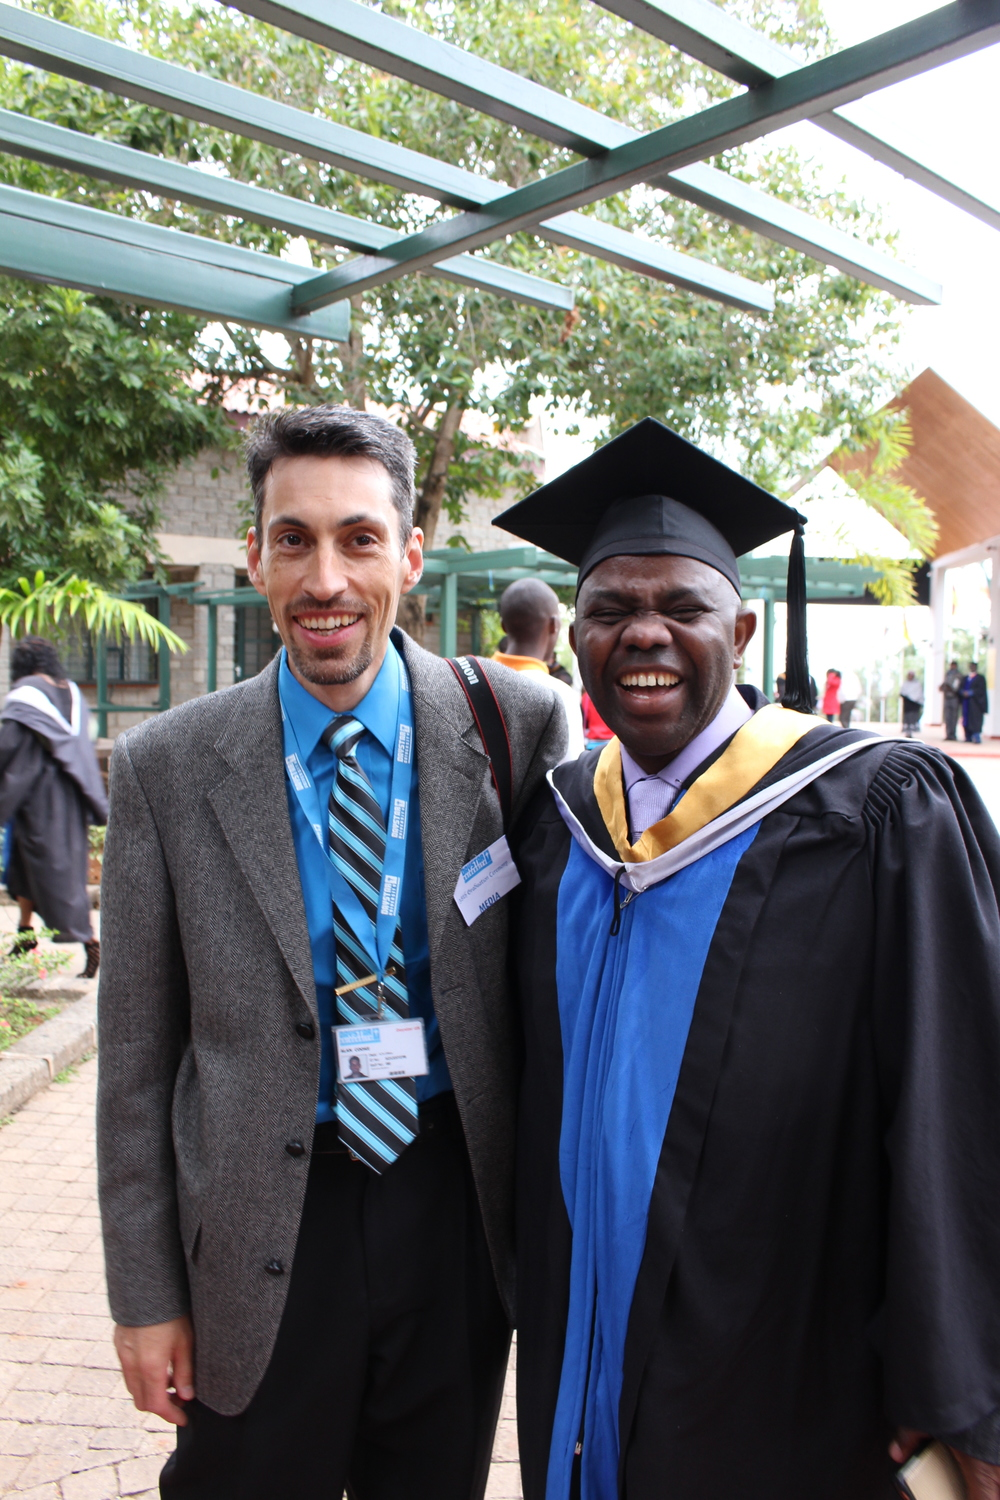 Alan Cooke, our Assistant Director, with his good friend Evariste at graduation.